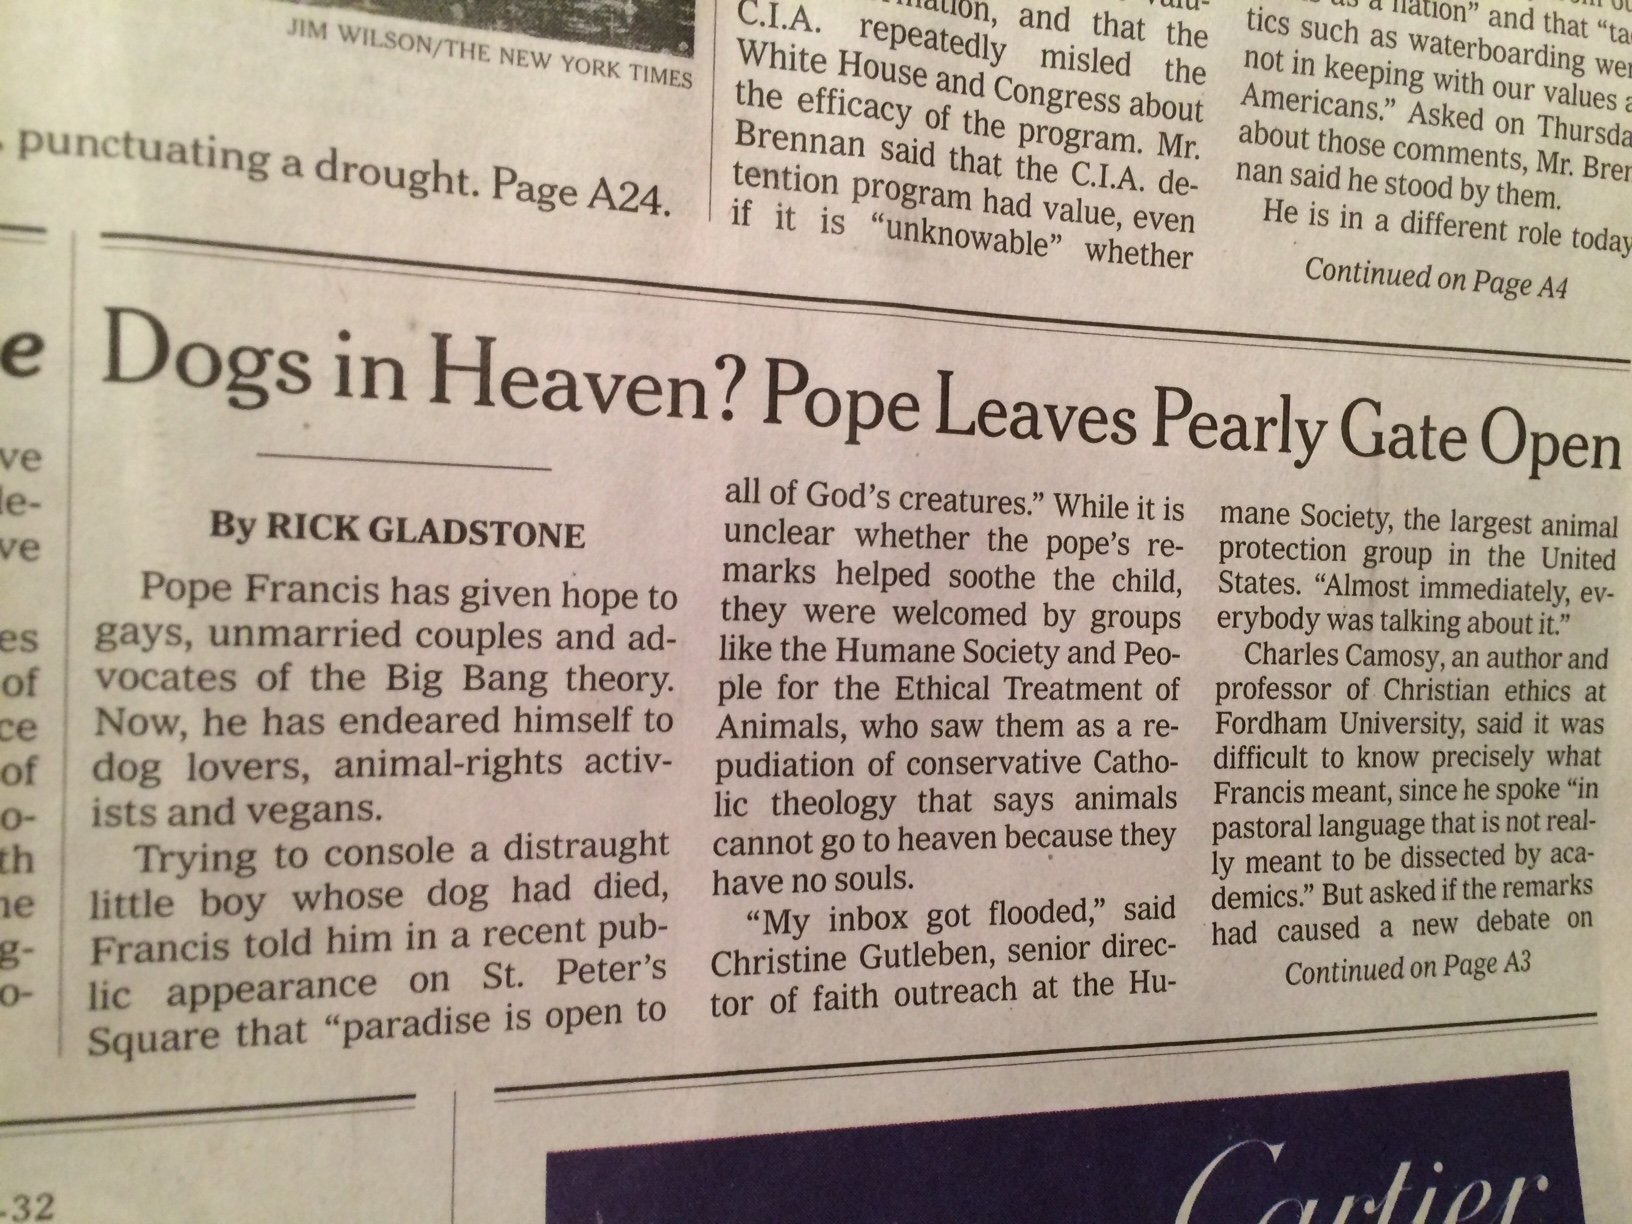 Pope francis did not say our pets are going to heaven